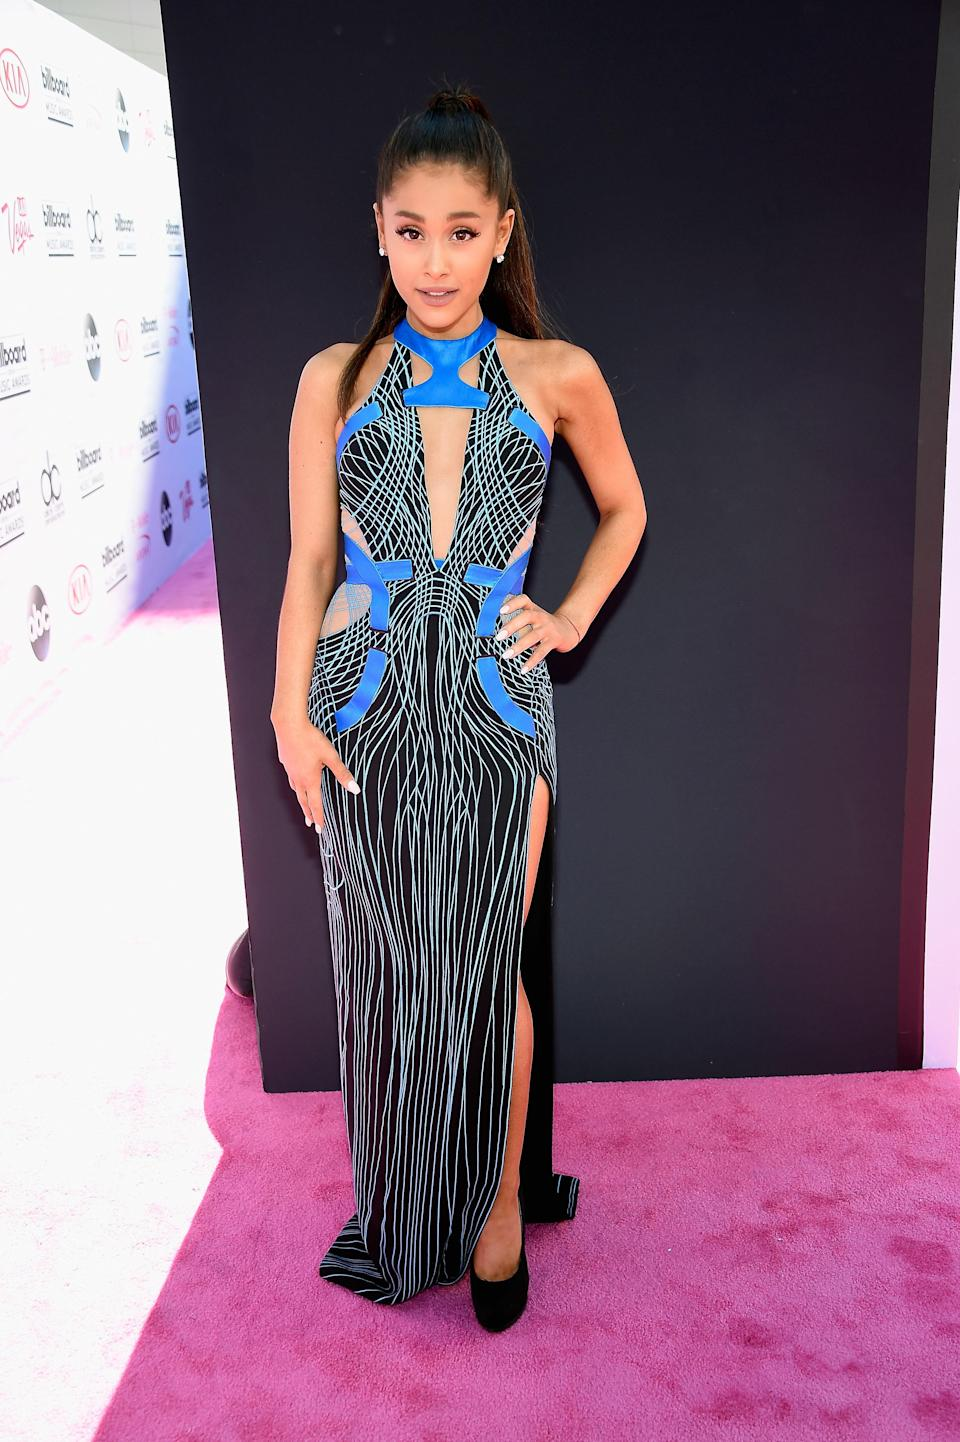 The <em>very</em> high slit of this gown by Atelier Versace is both daring and makes for a futuristic spin on the cocktail dress.